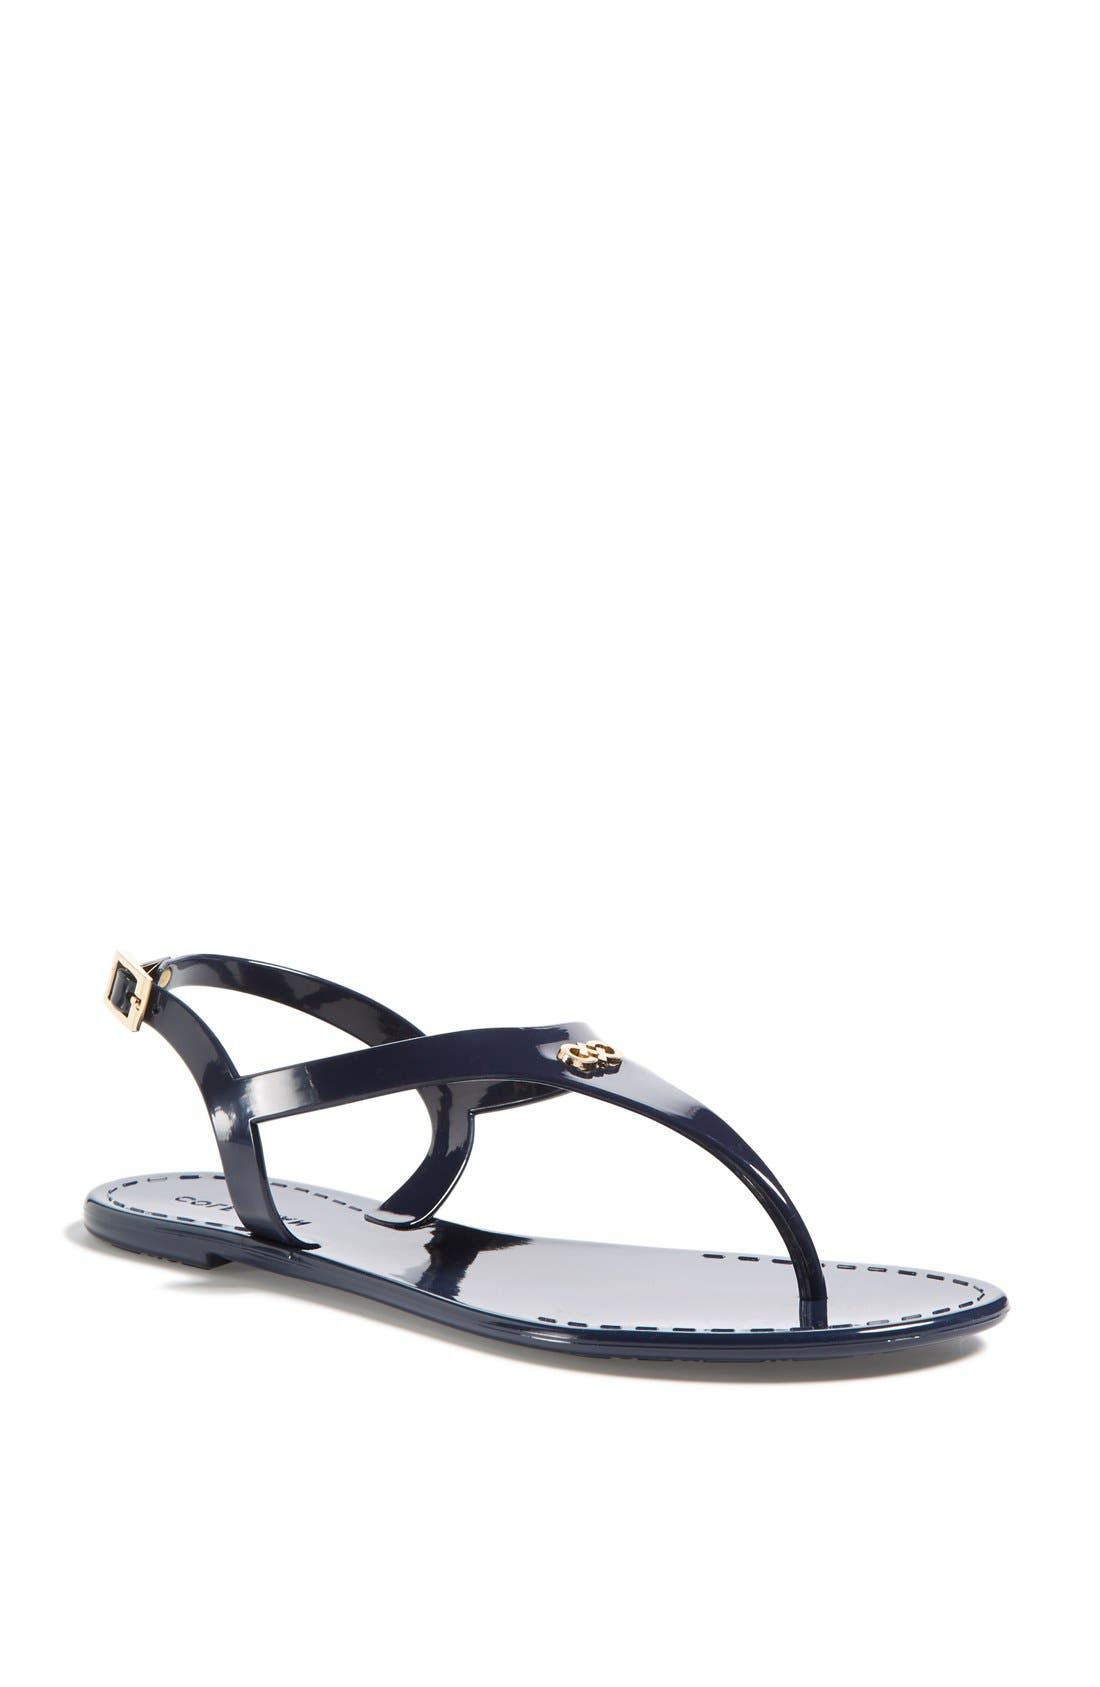 Alternate Image 1 Selected - Cole Haan Jelly Sandal